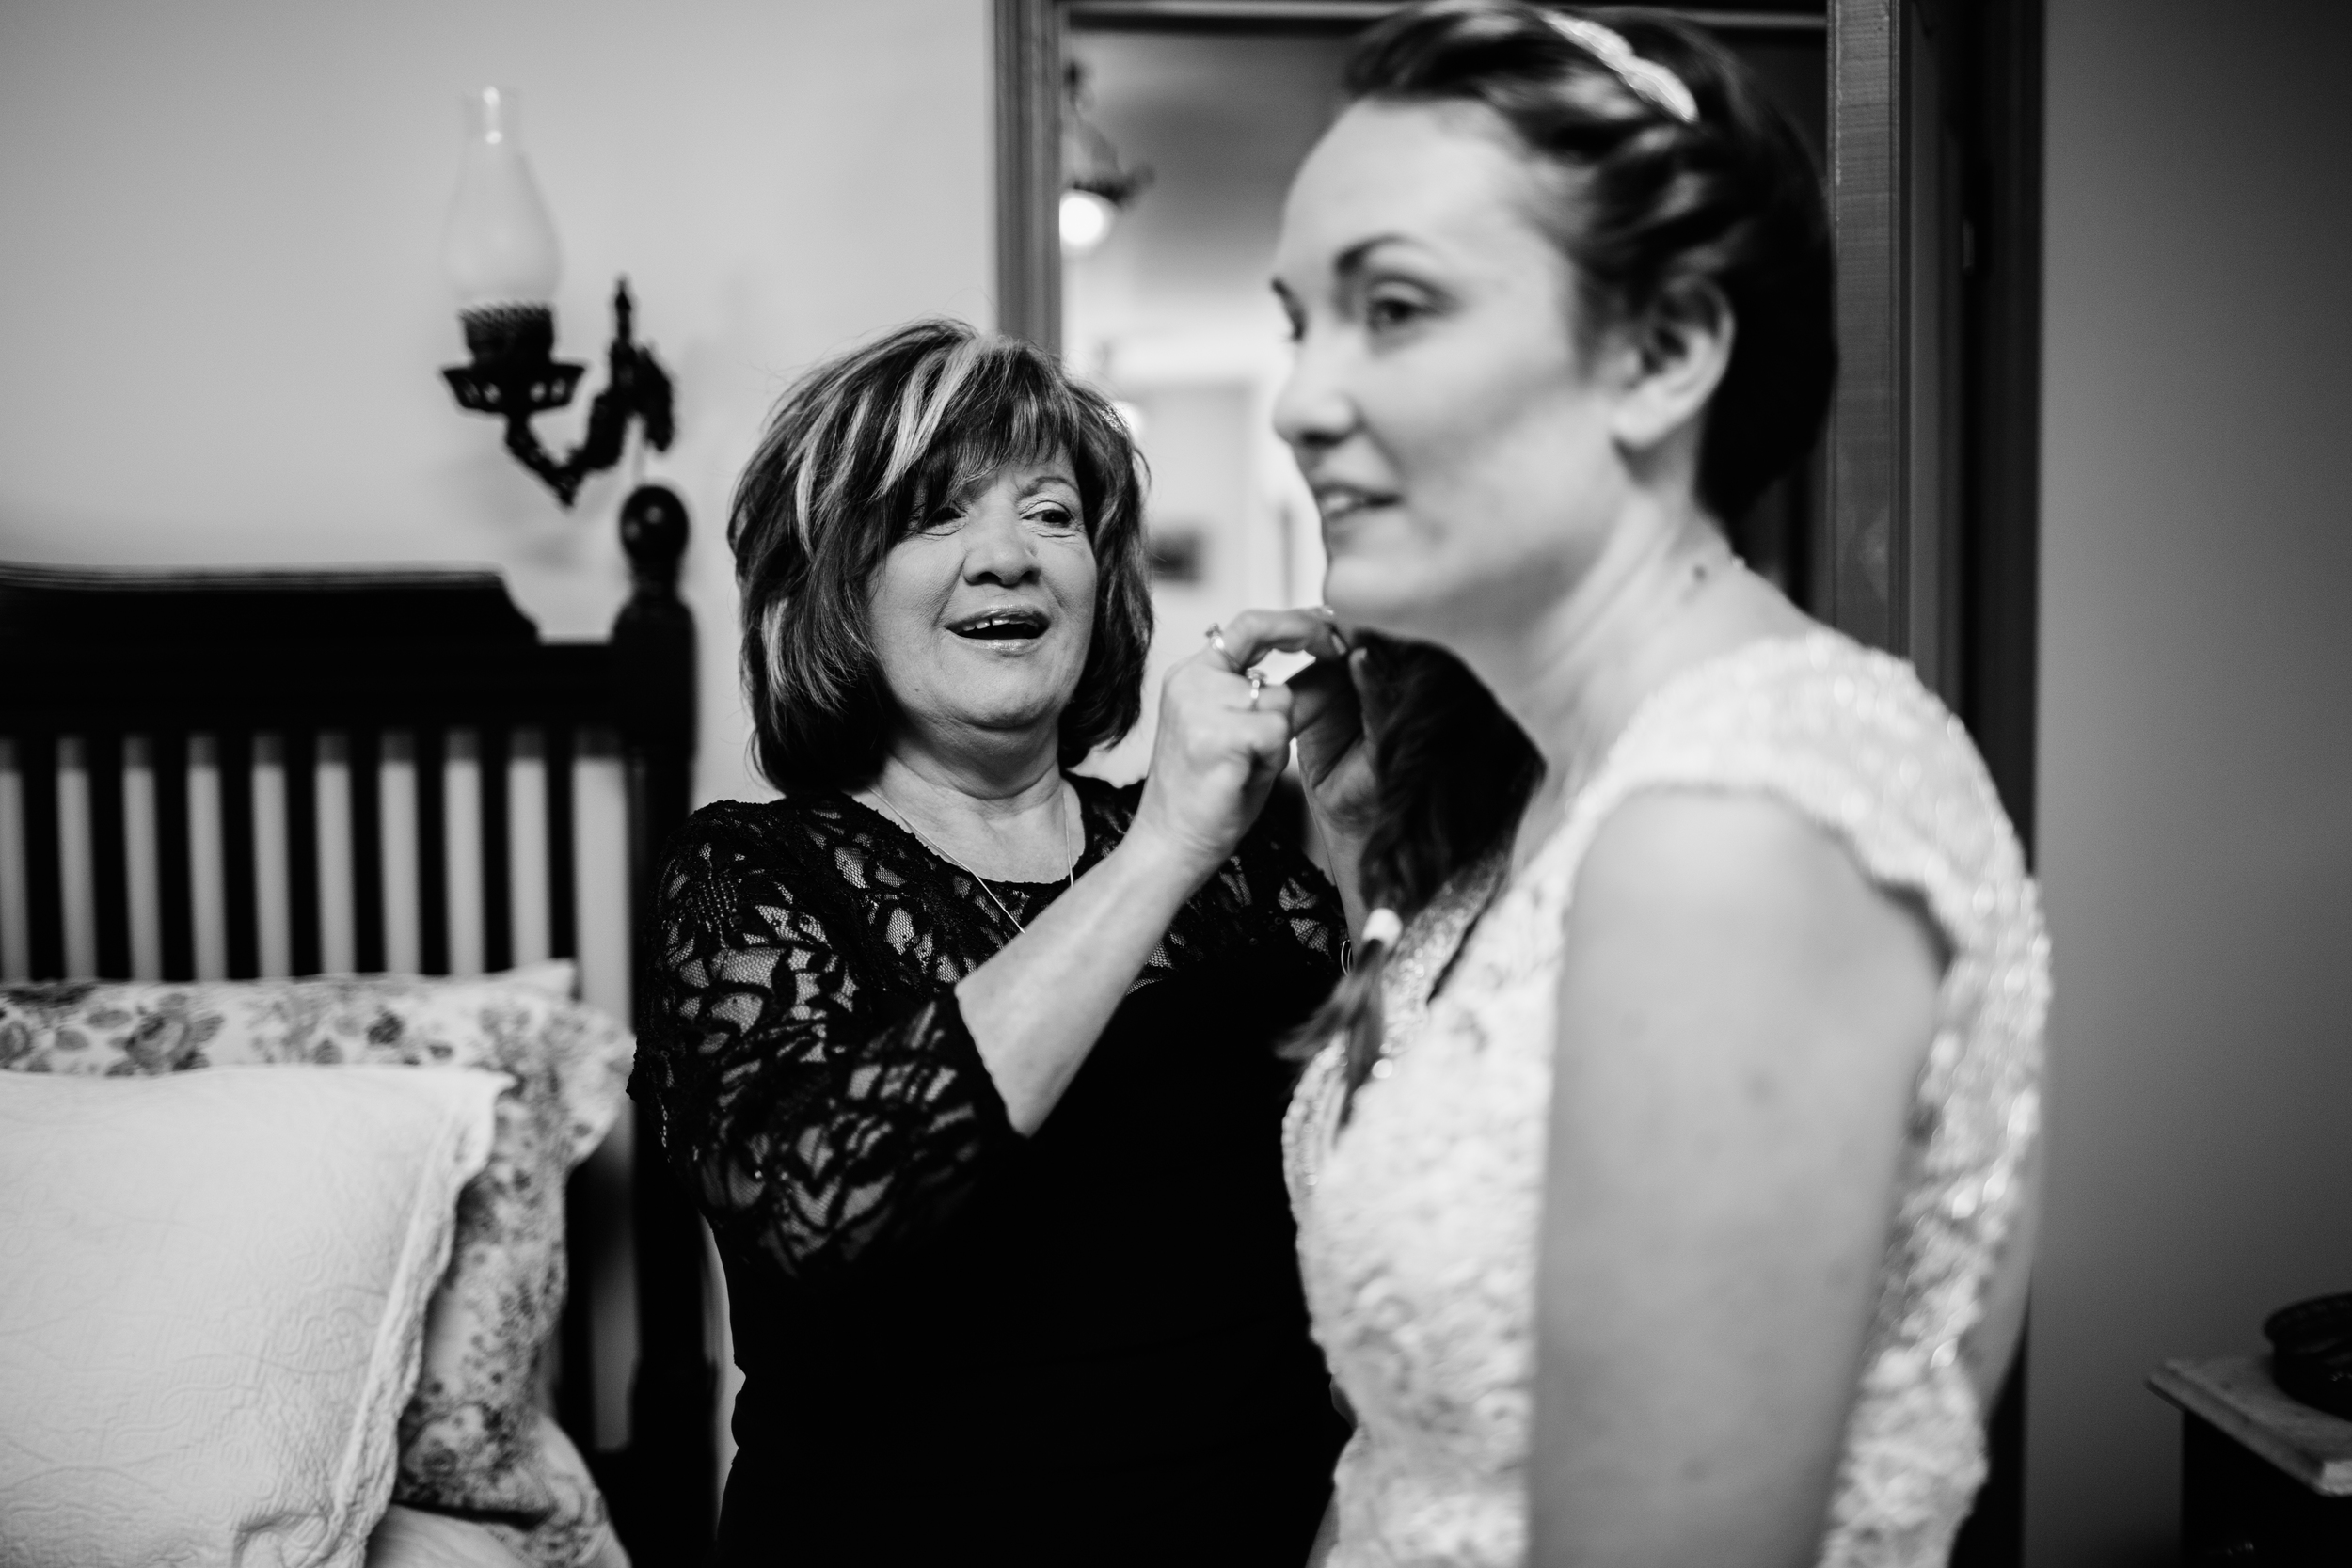 KELLIandBRADweddingJUNE2015 - gettingready (49 of 66).jpg